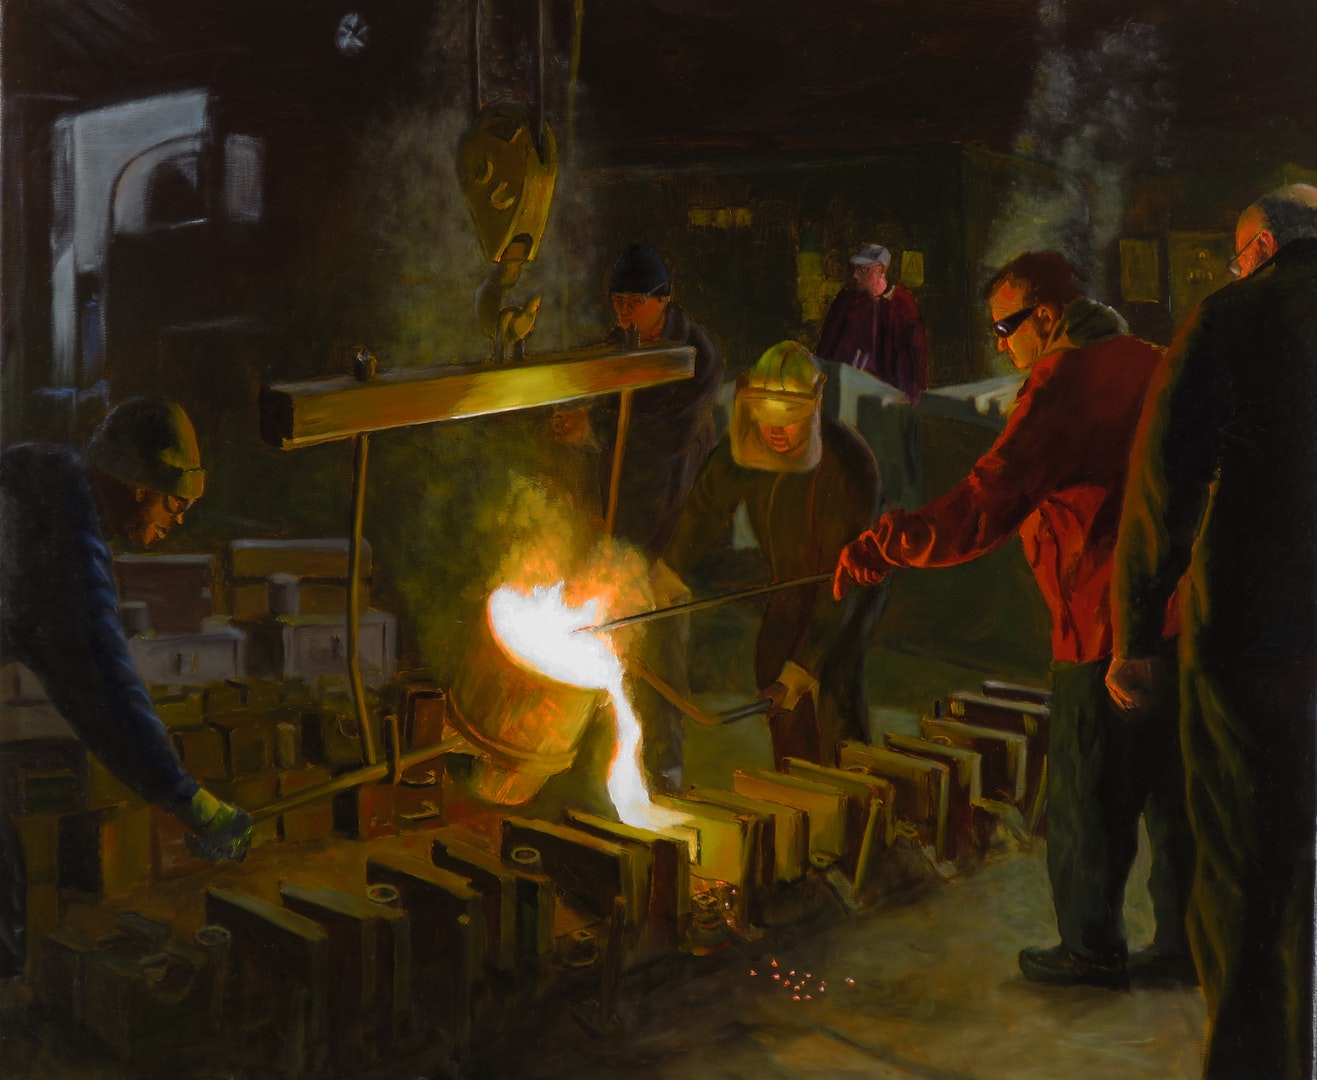 'Casting Steel', Terry Kent, Oil on Linen, 50 x 60 cm